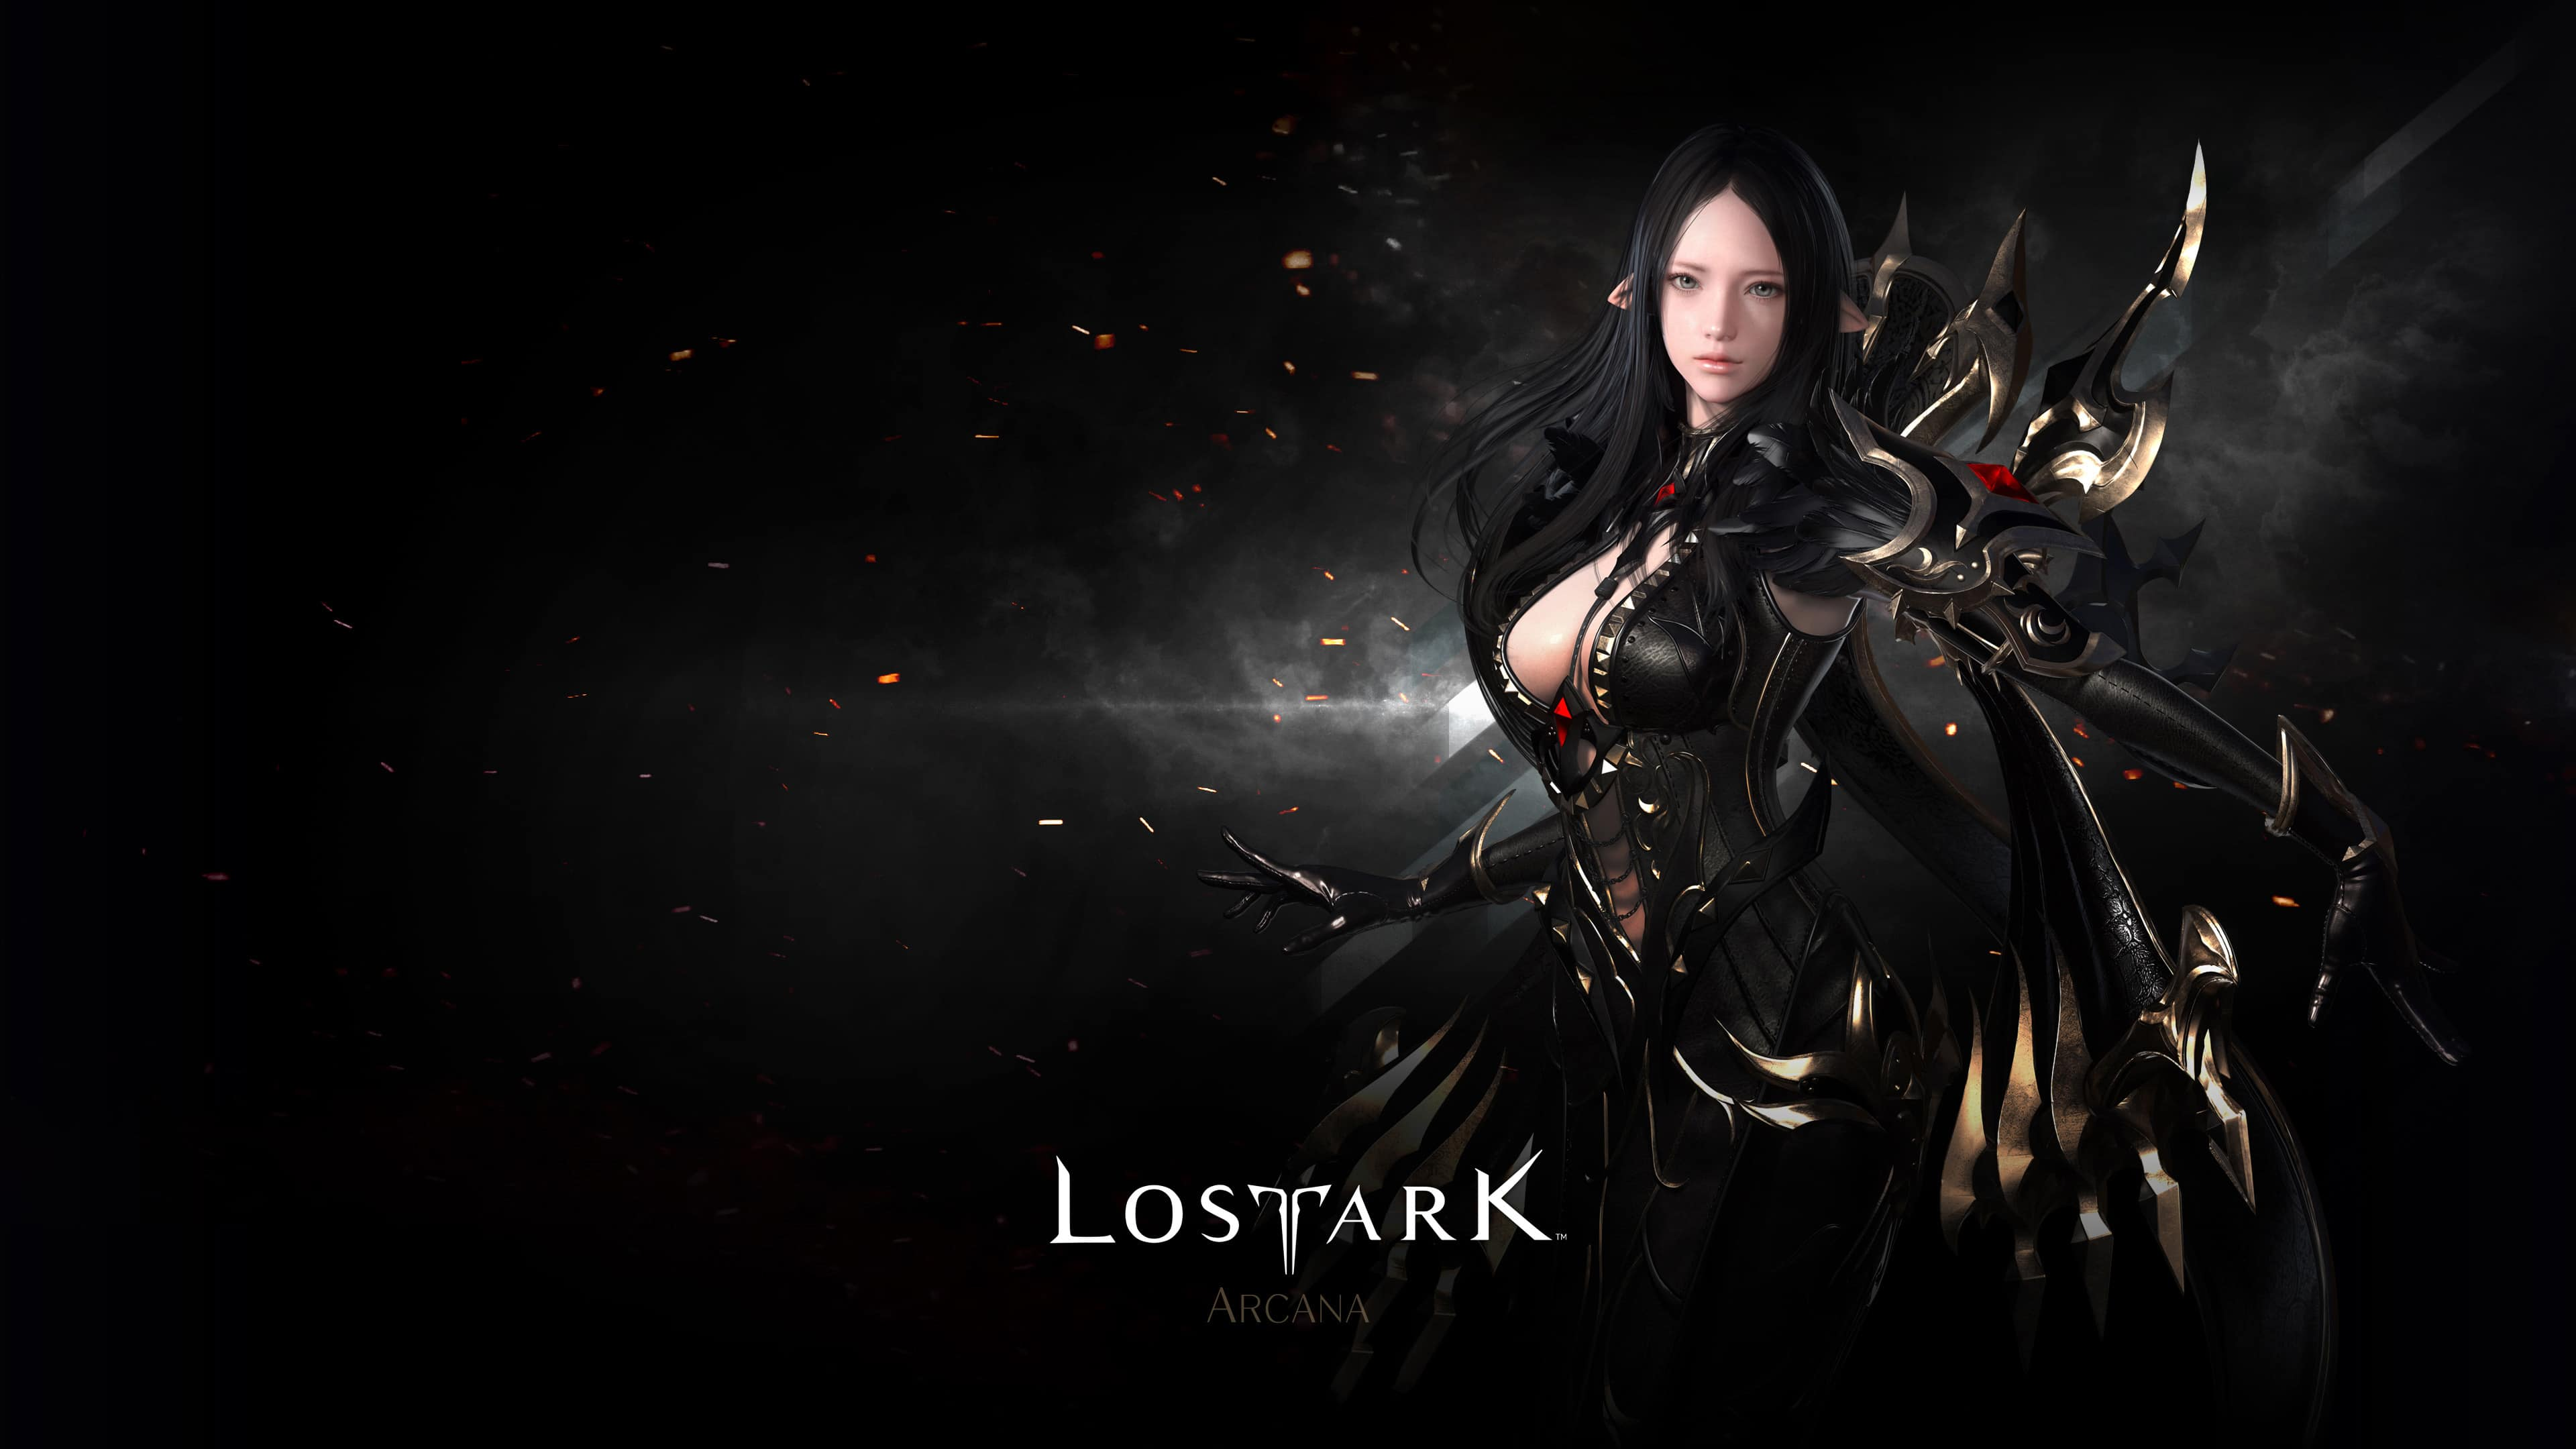 lost ark arcana uhd 4k wallpaper